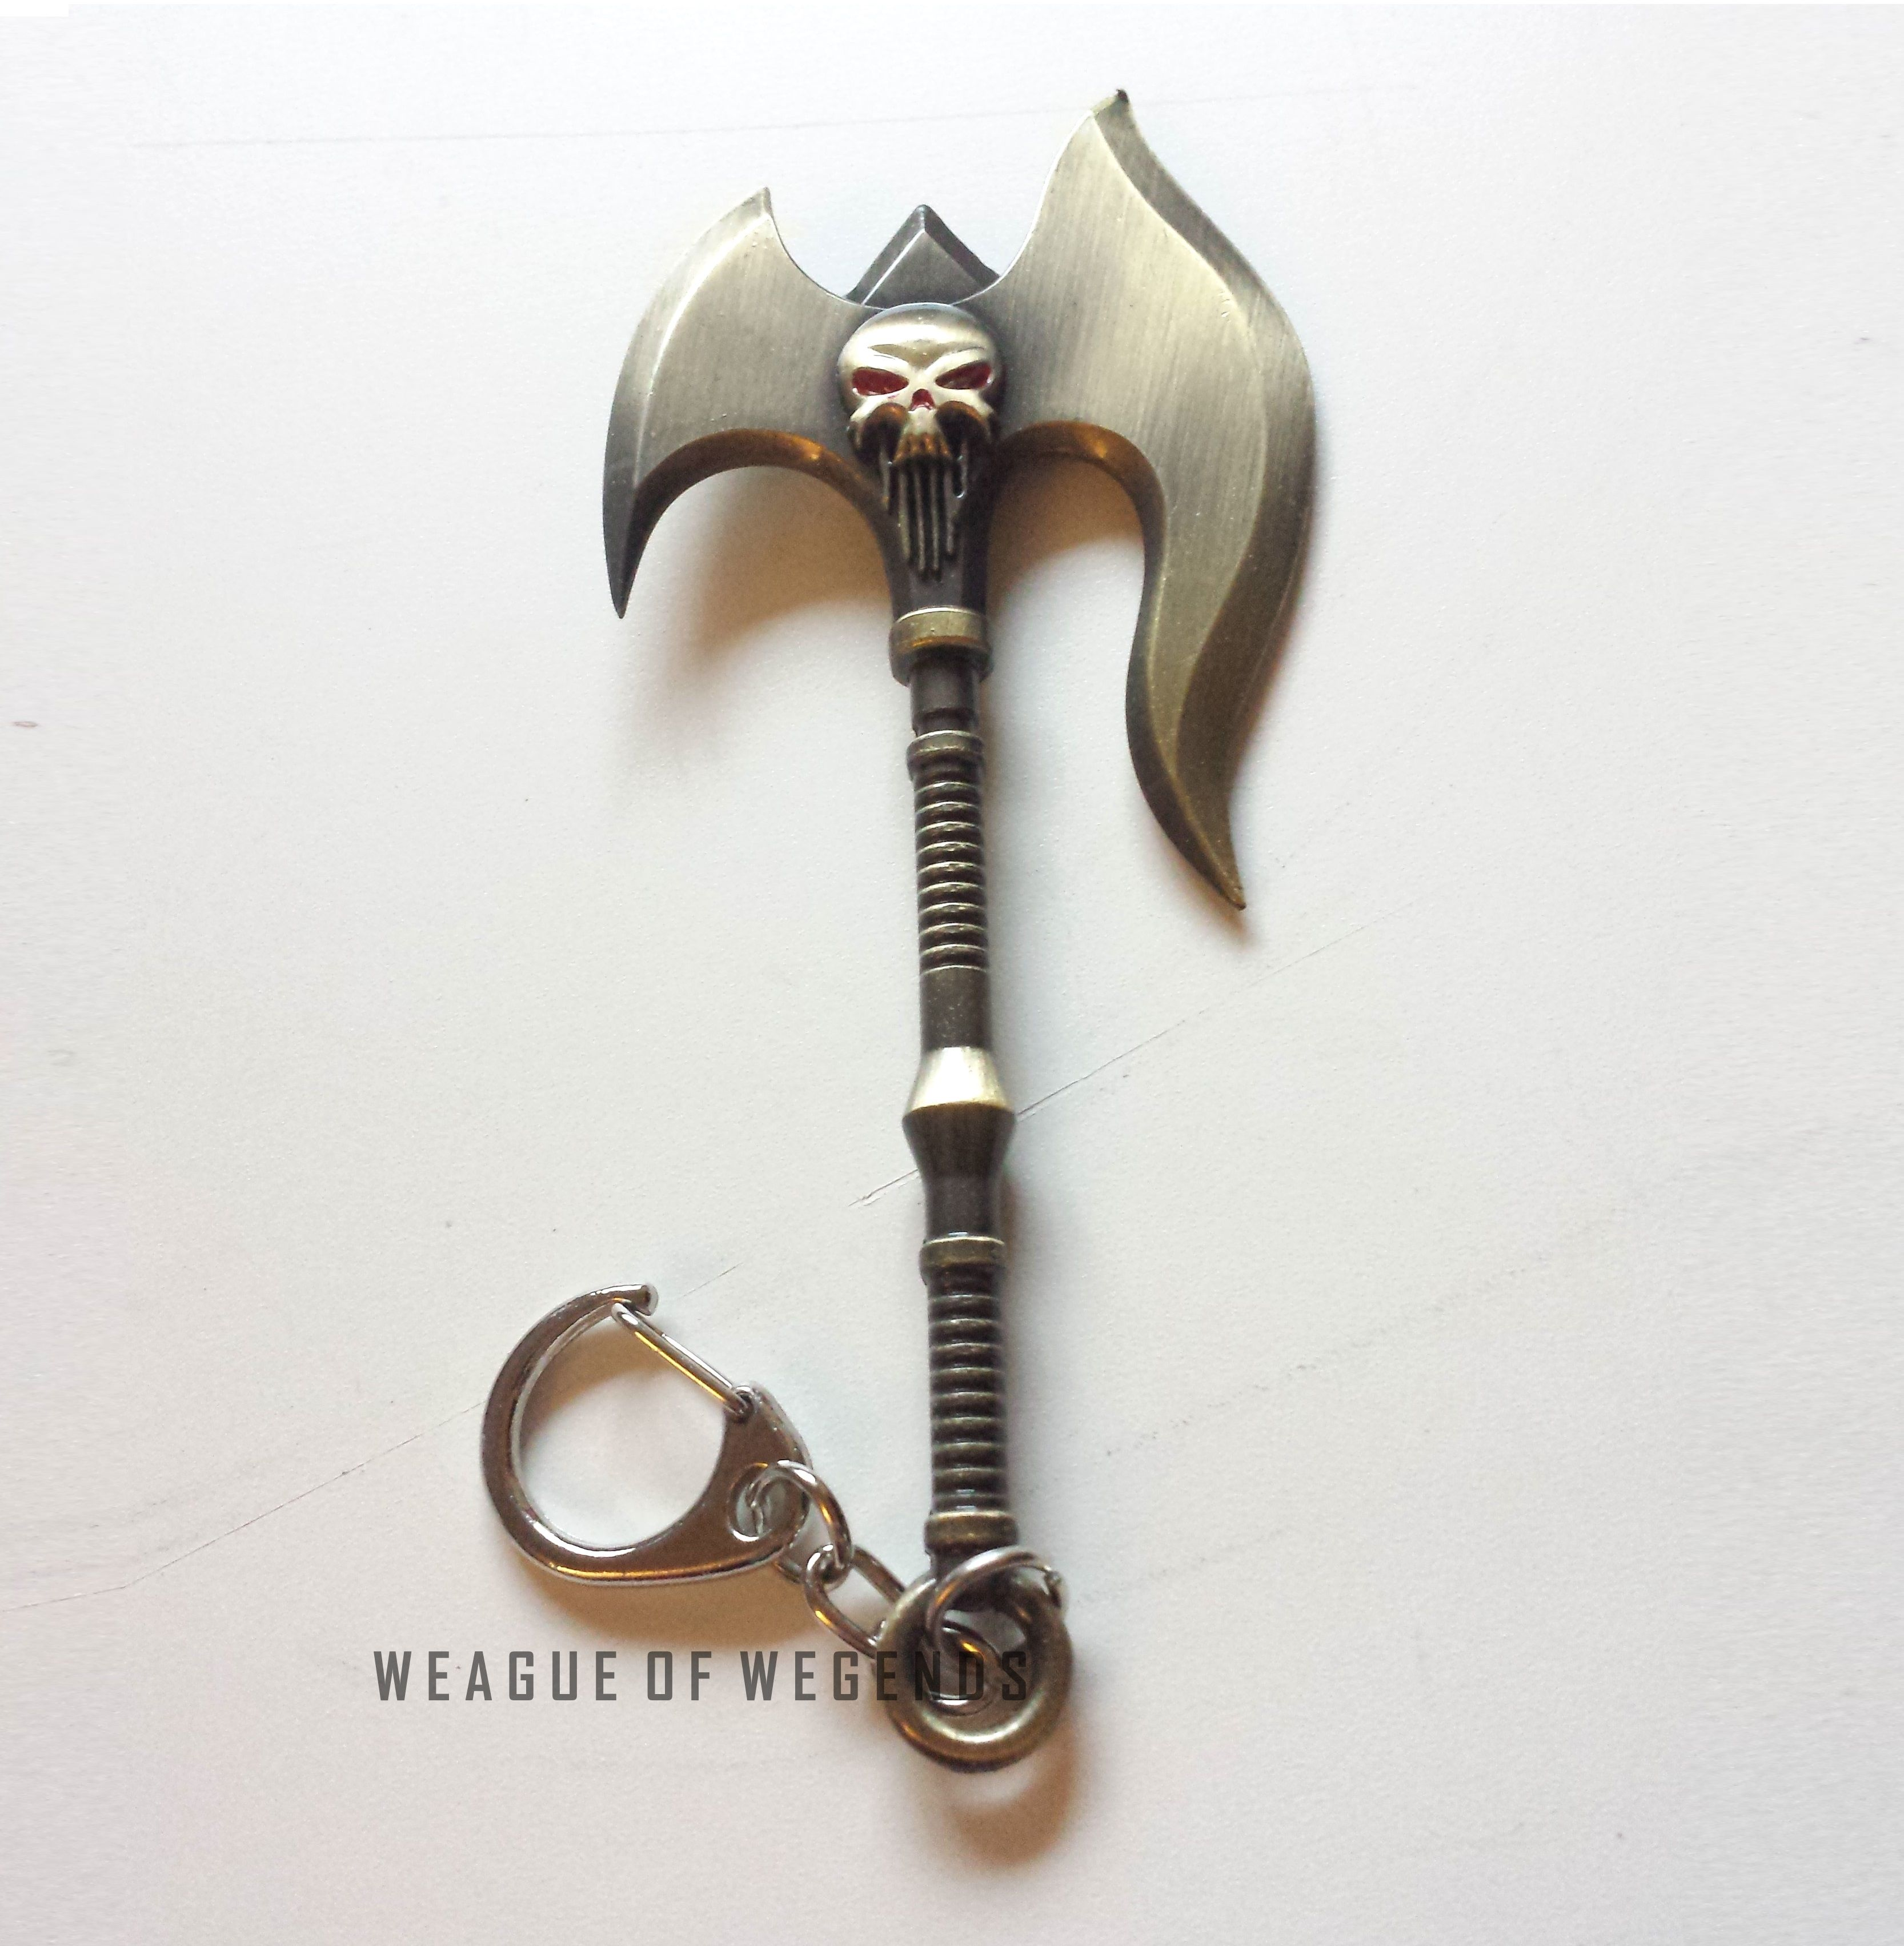 """This+is+Darius'+axe+from+League+of+Legends!+Perfect+for+any+Darius+fans.  Material+:+Alloy Condition:+Brand+new Size:+5""""+  *If+you+want+this+product+as+a+necklace,+please+write+it+in+your+note+and+I+will+do+that+for+you+free+of+charge."""